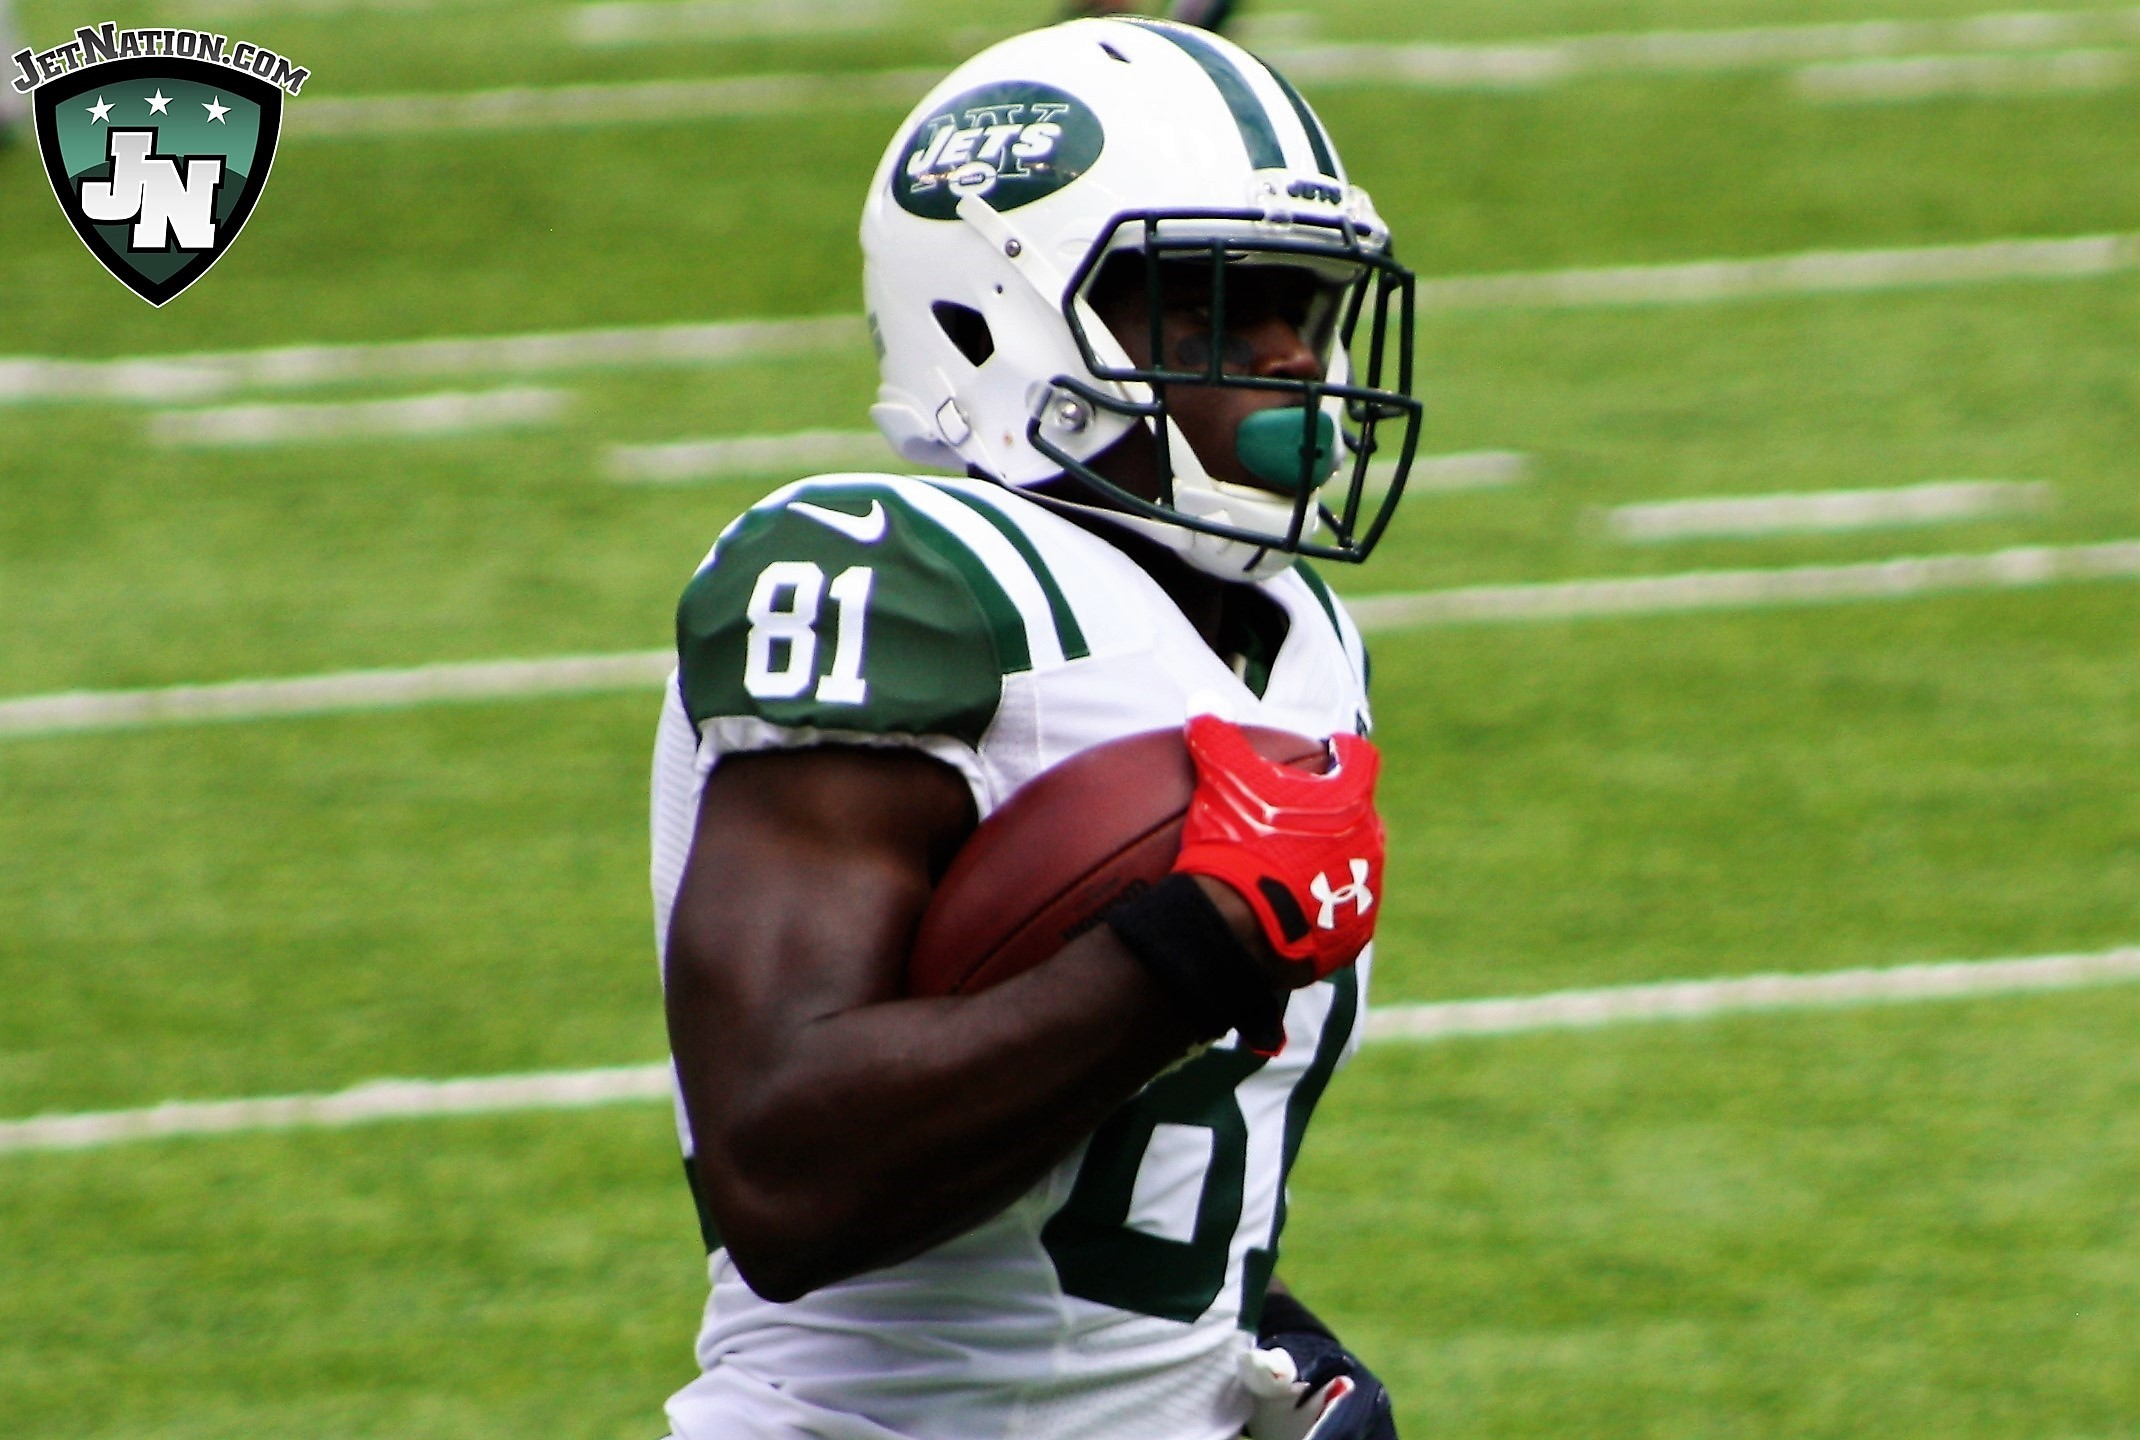 Quincy Enunwa: Hard to argue Jets aren't trying to tank